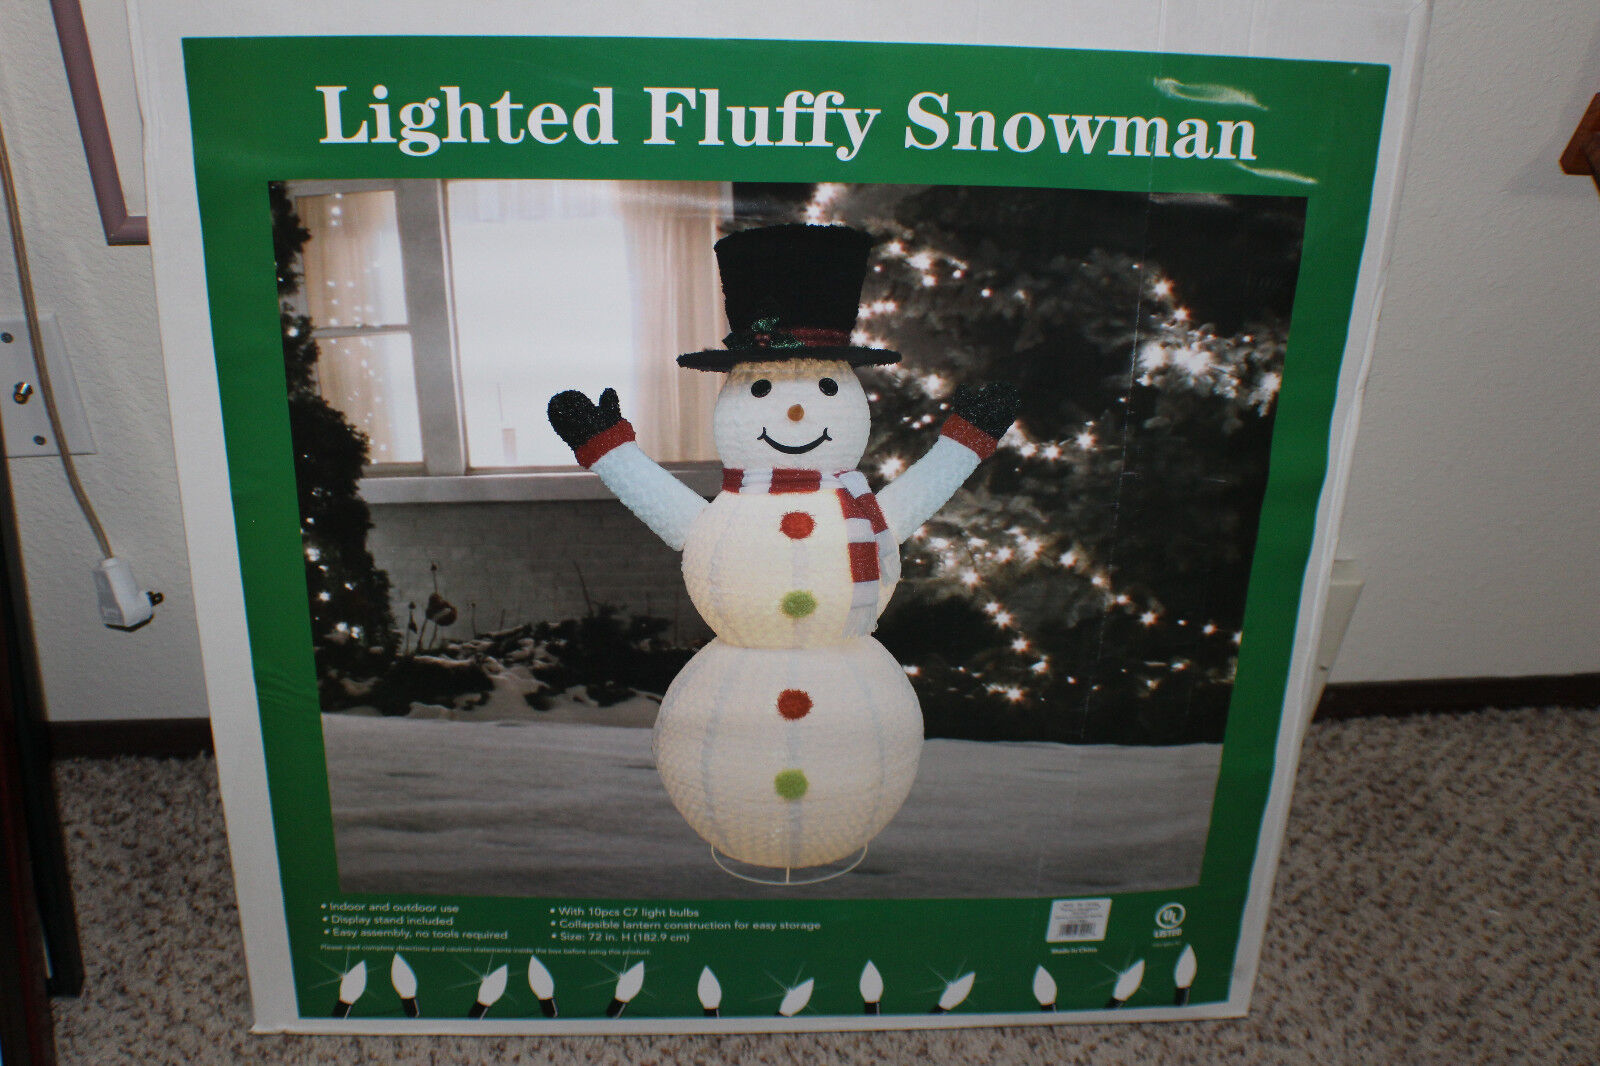 Inflatable Snowman Lighted 6 Ft. Outdoor Winter Yard Christmas Decor